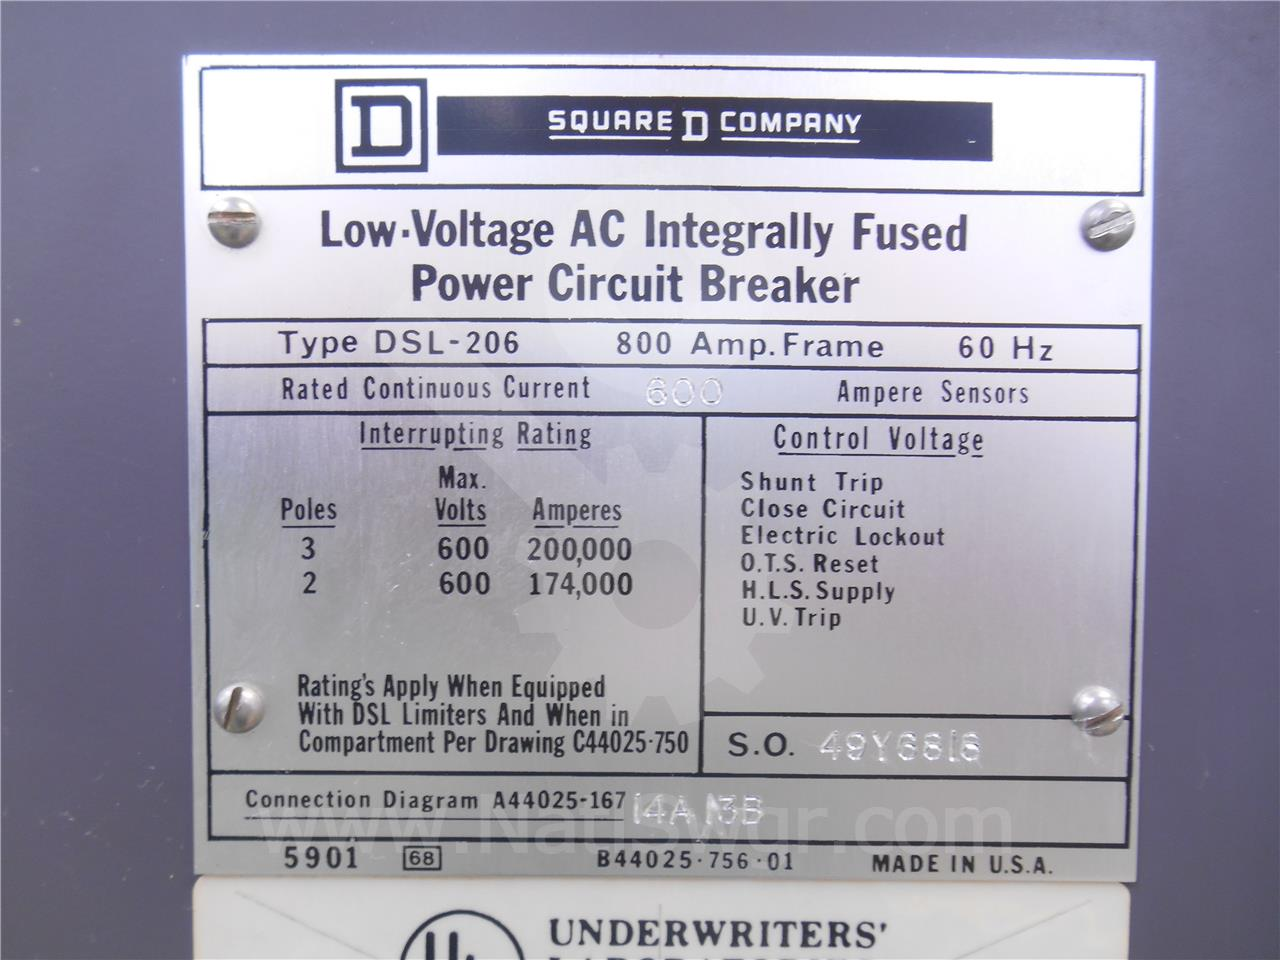 Dsl 206 800a Square D Sqd Mo Do Amptector Ii A Du Li 600a Ct Bfi Powerlogic Wiring Diagram